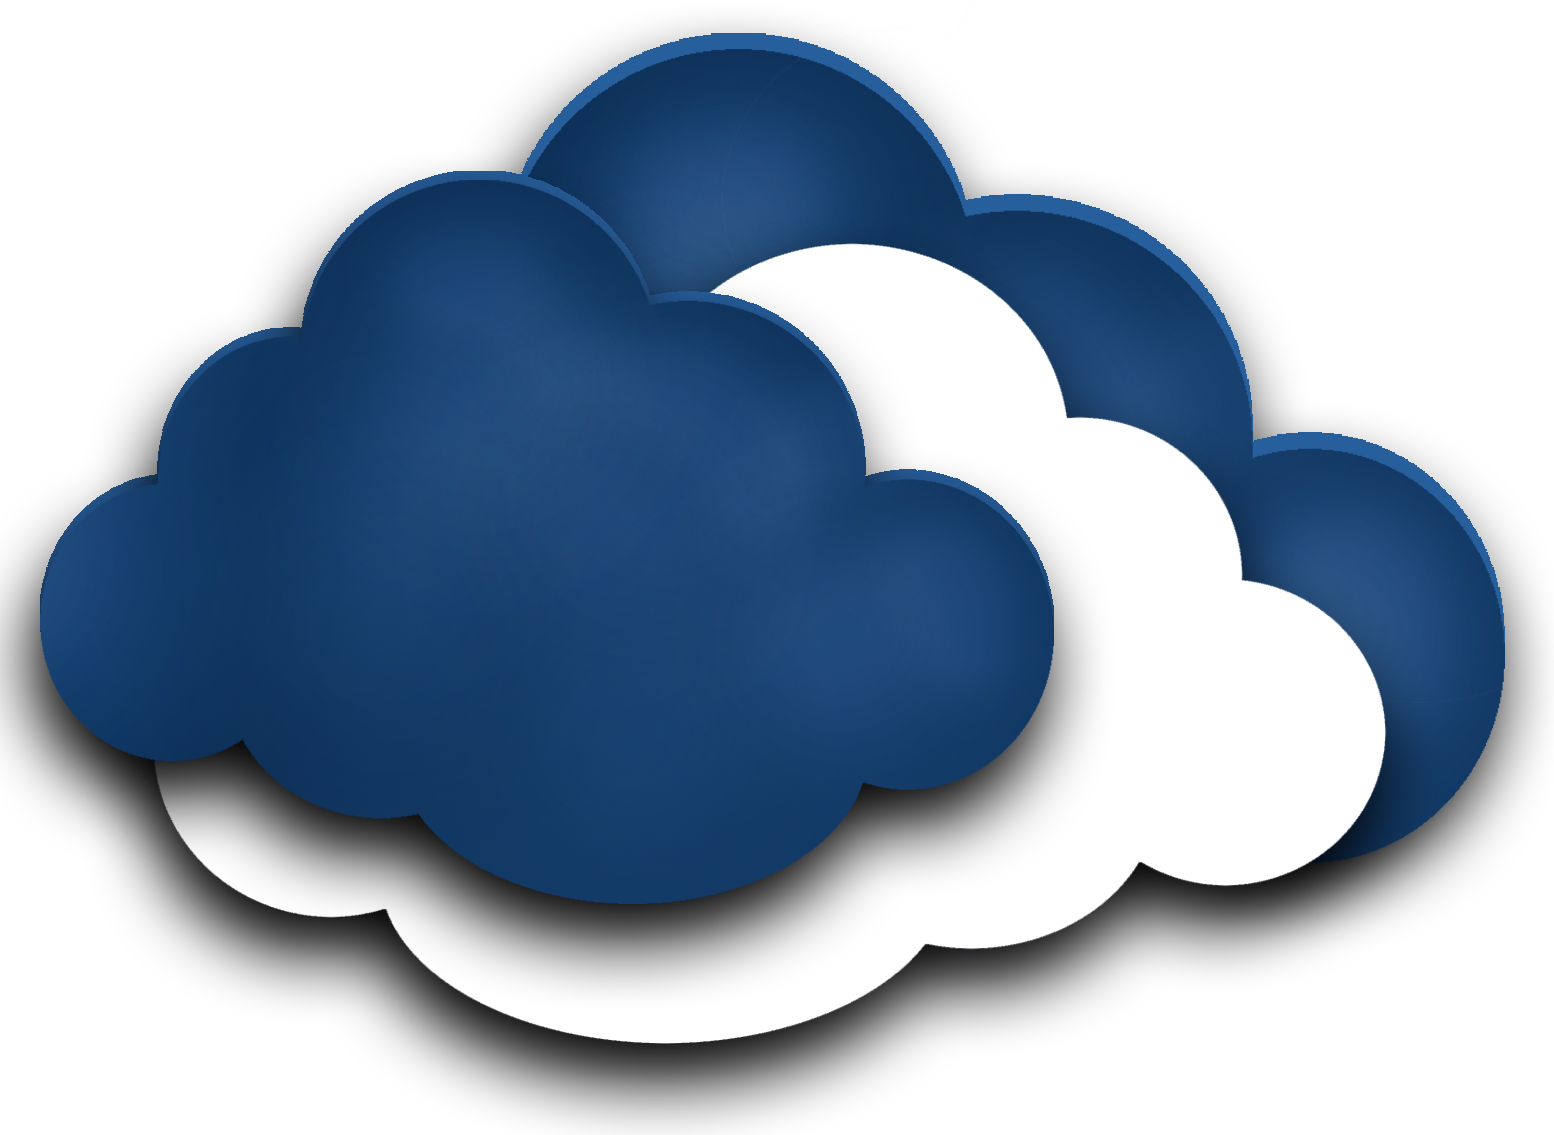 Vector clouds png. Clipart panda free images